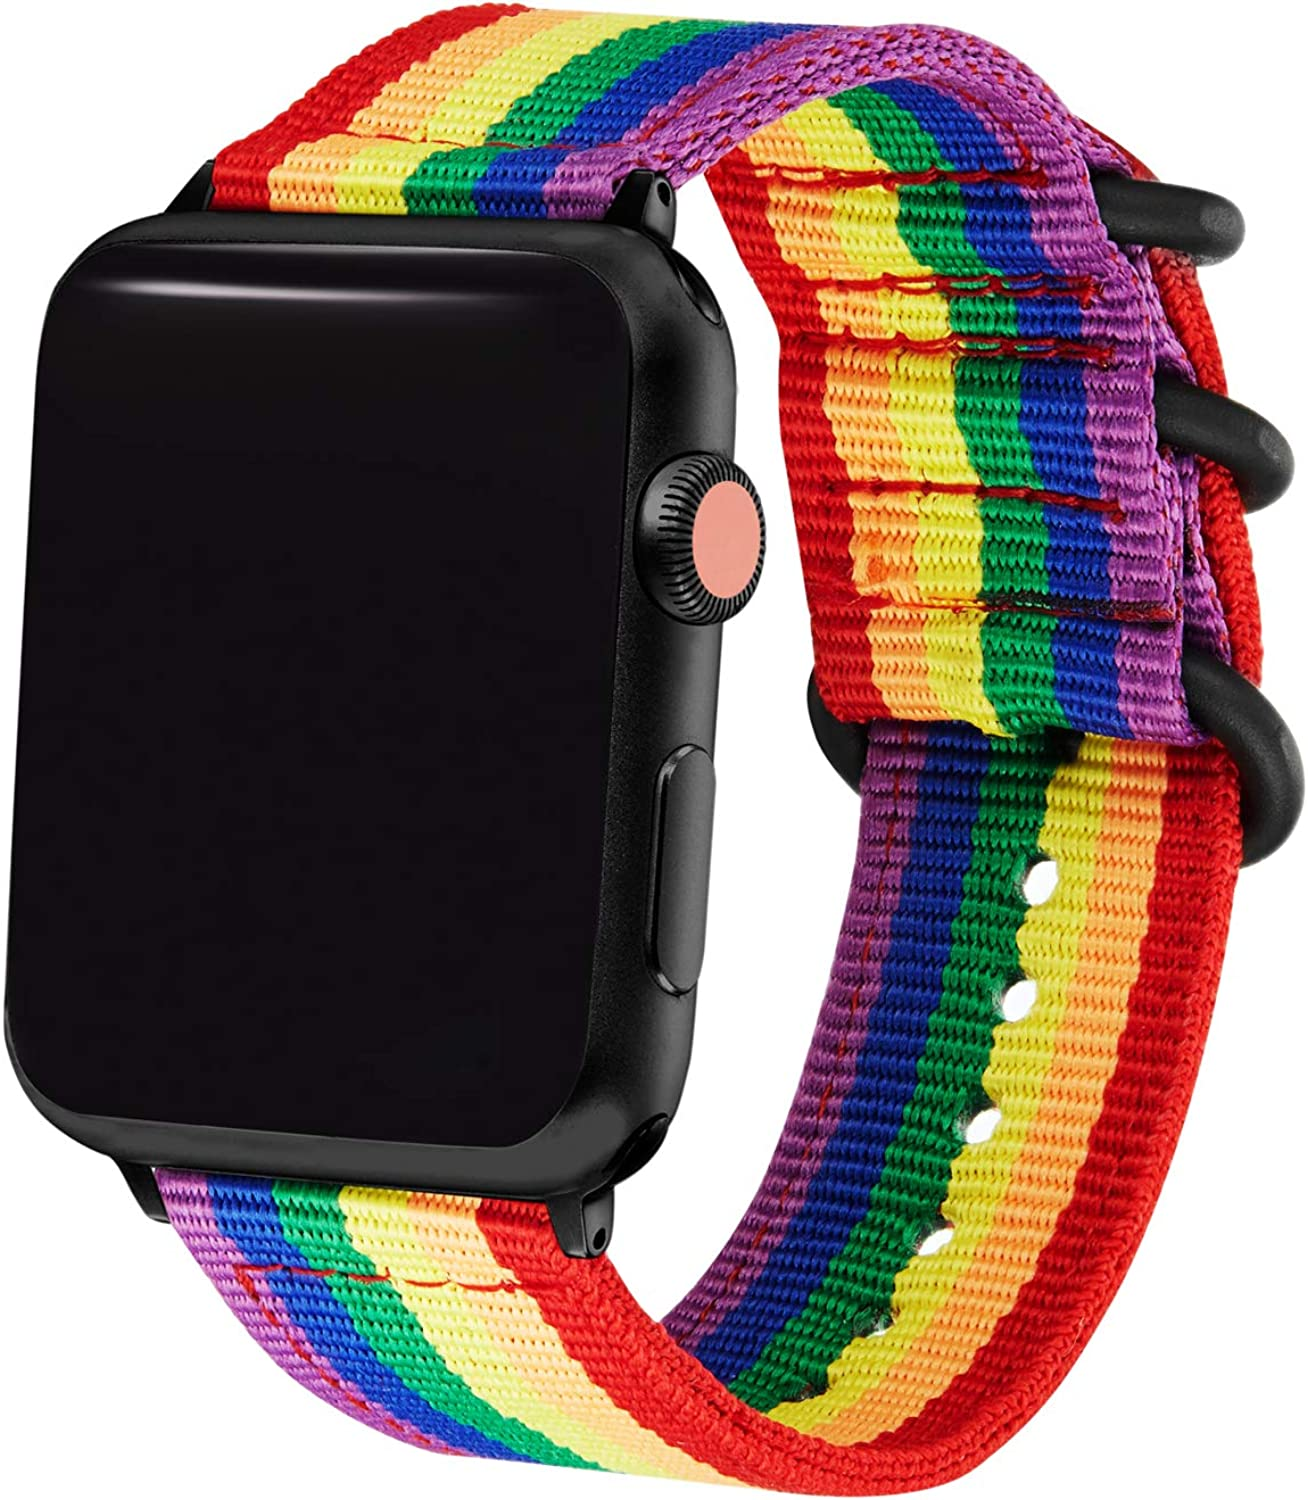 dkplnt 38mm 40mm Rainbow Compatible Apple Watch Band Nylon Colorful LGBT Black NATO Buckle iWatch Band Series 5 4 3 2 1 Women Men